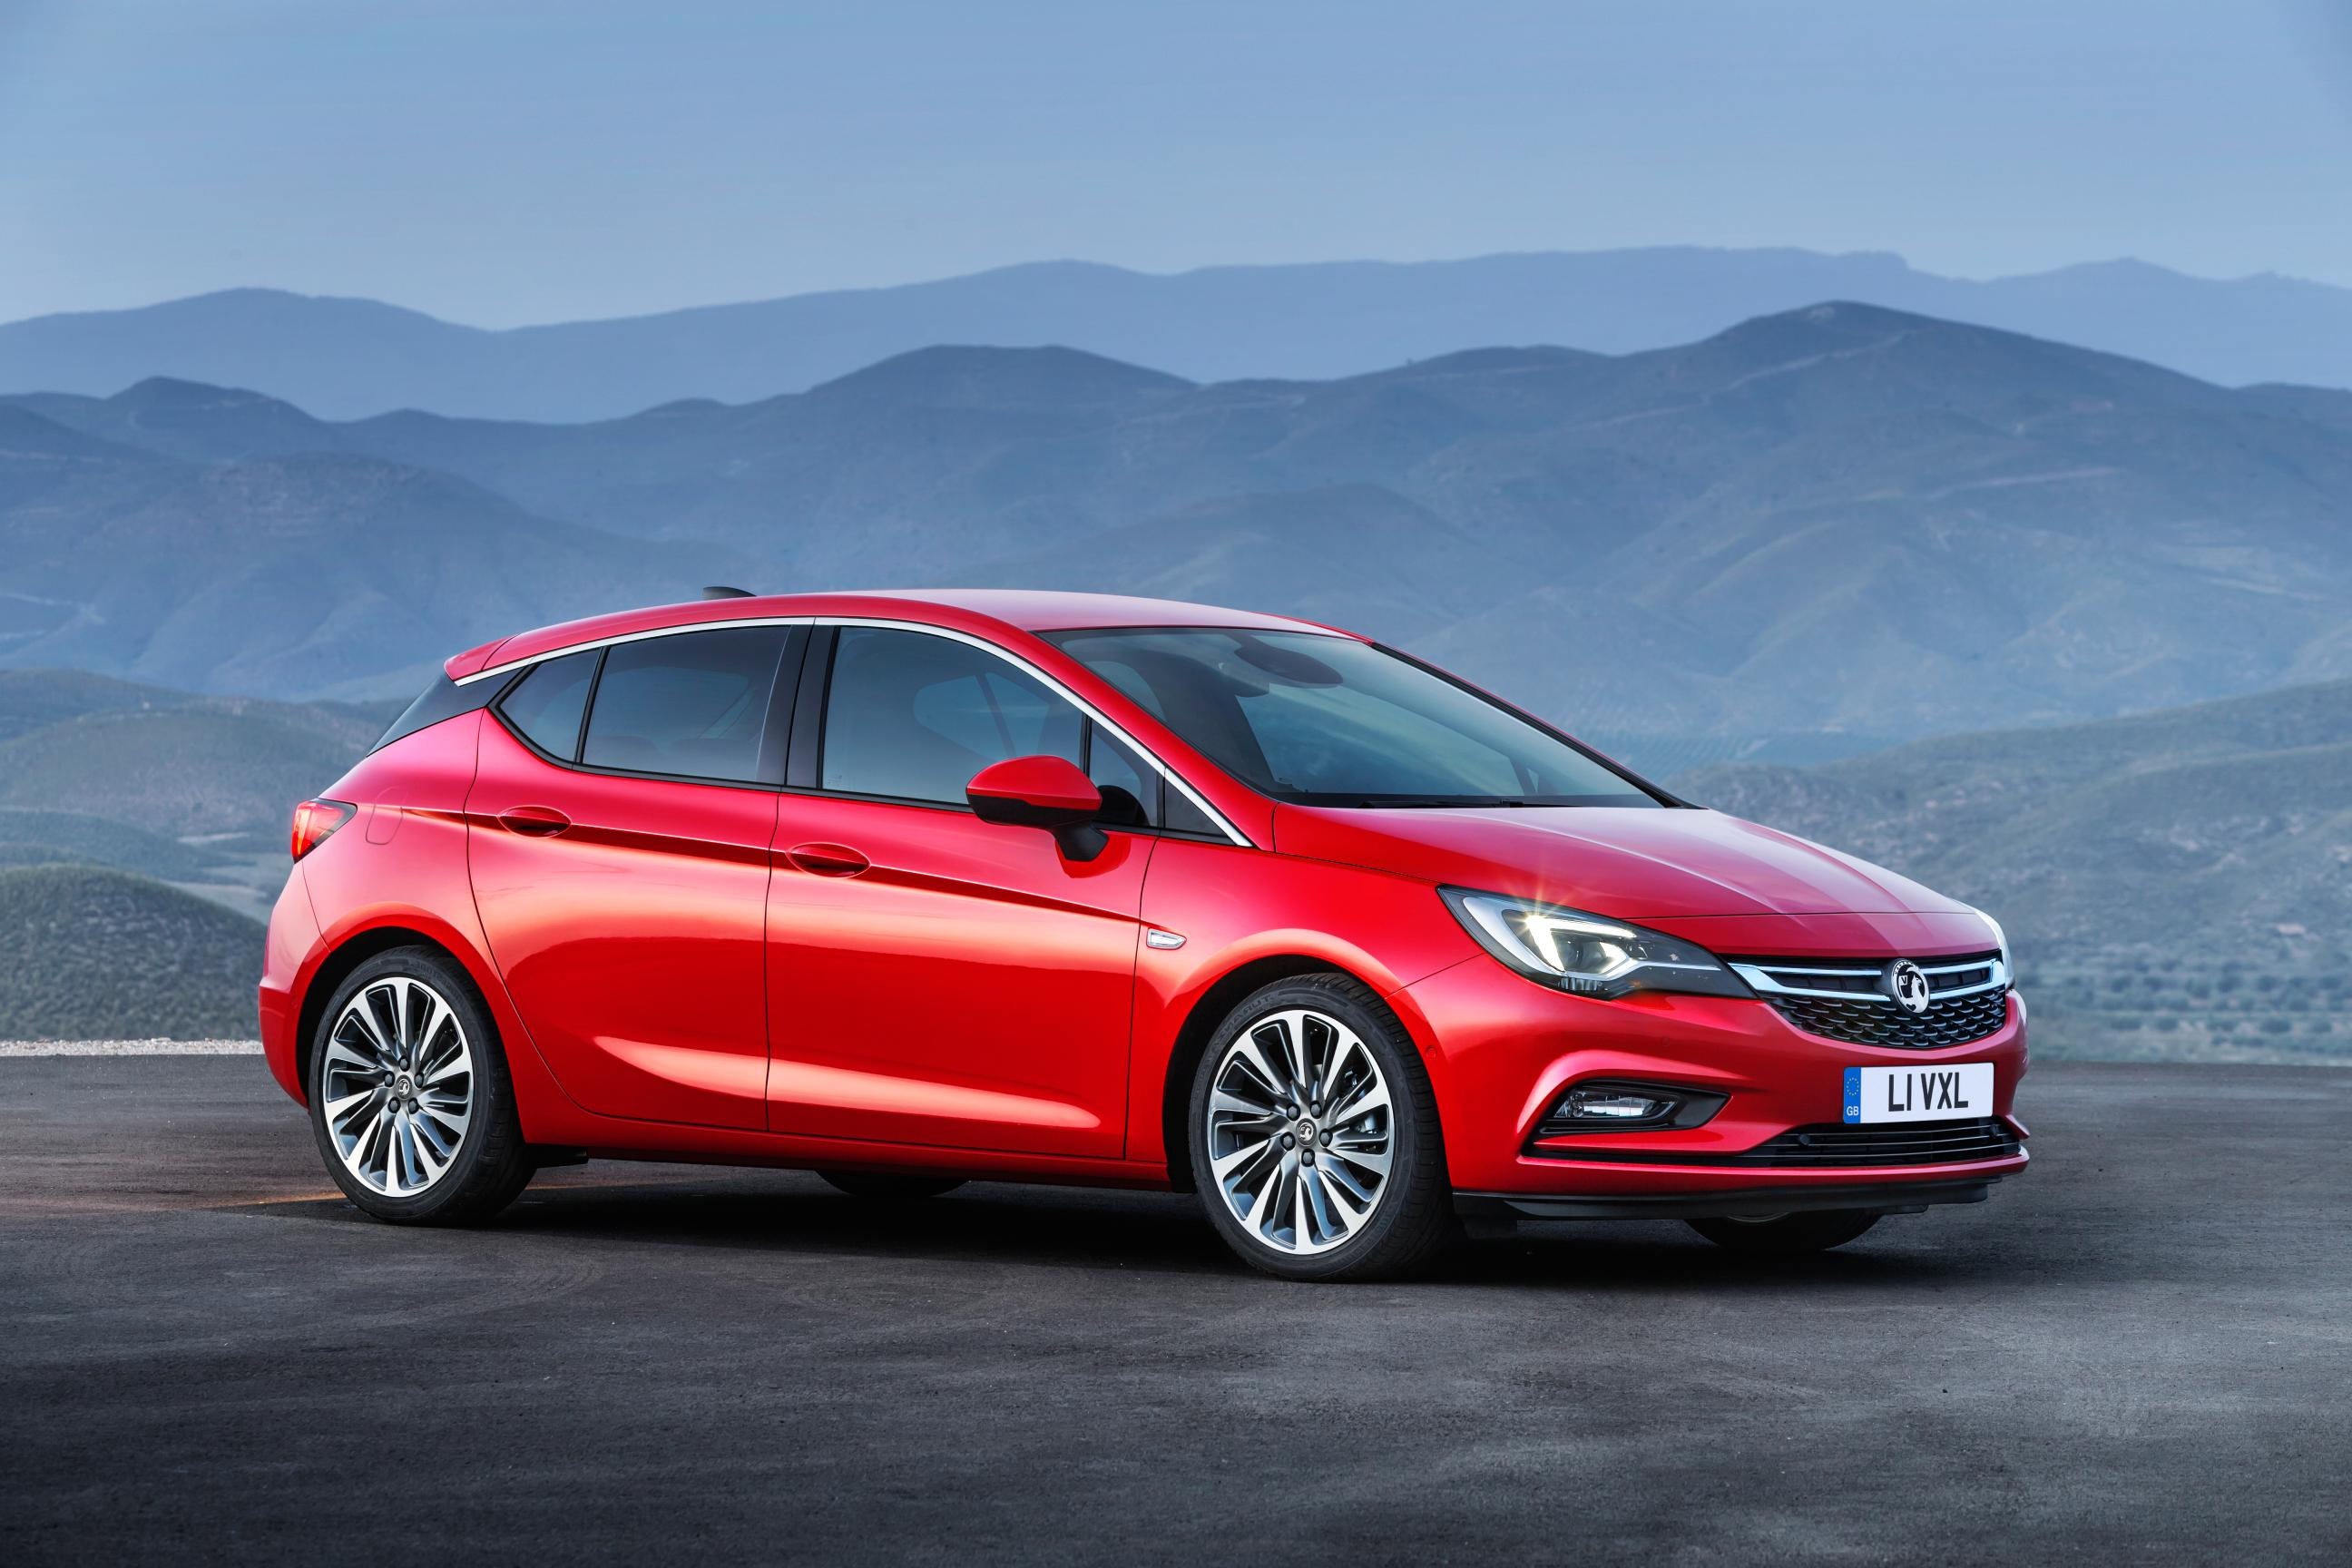 Vauxhall Astra Red side on view